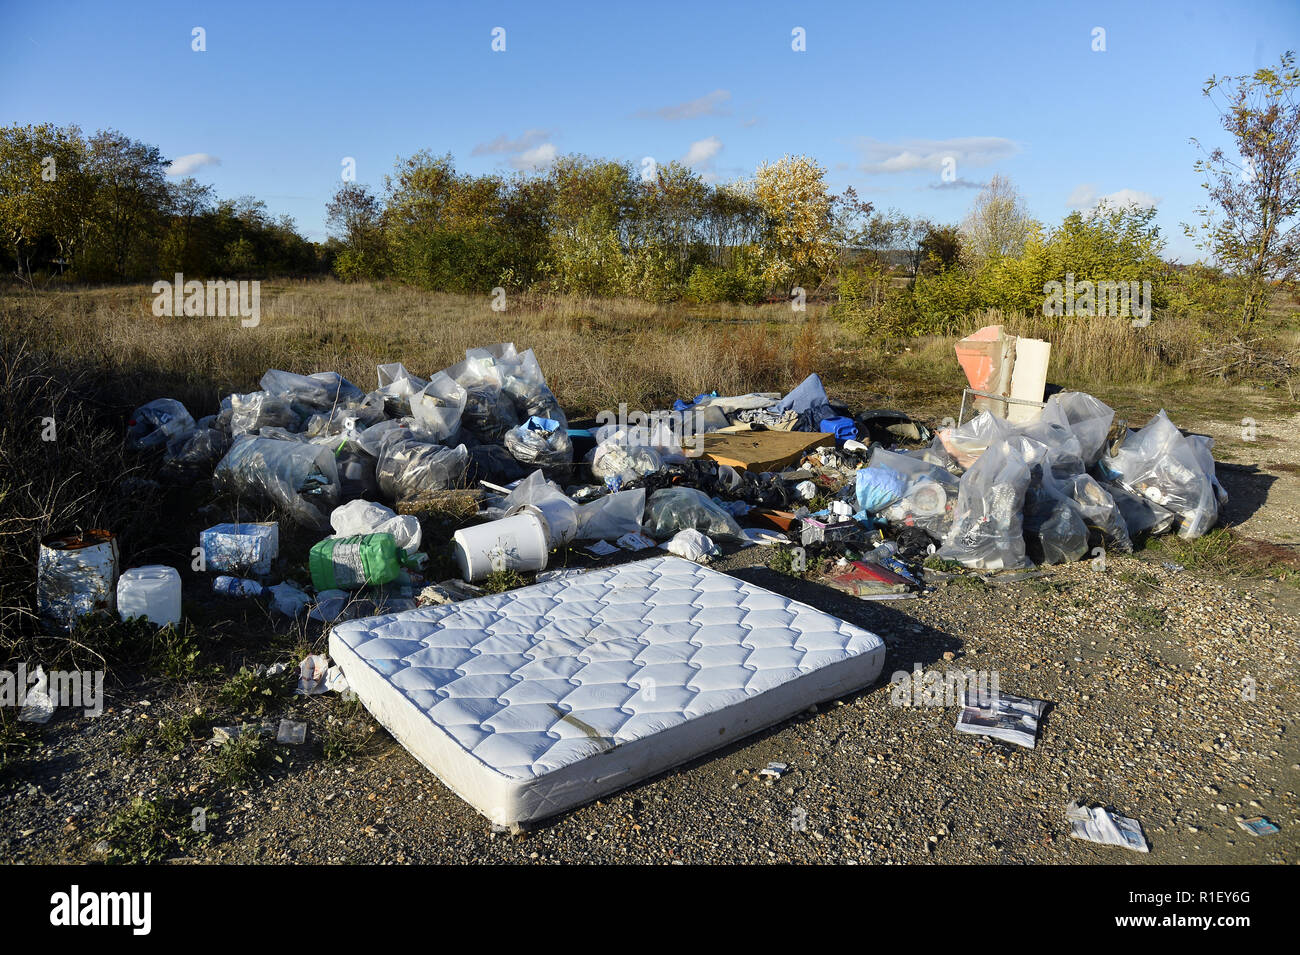 Uncontrolled Landfill - Carrières sous Poissy - France - Stock Image